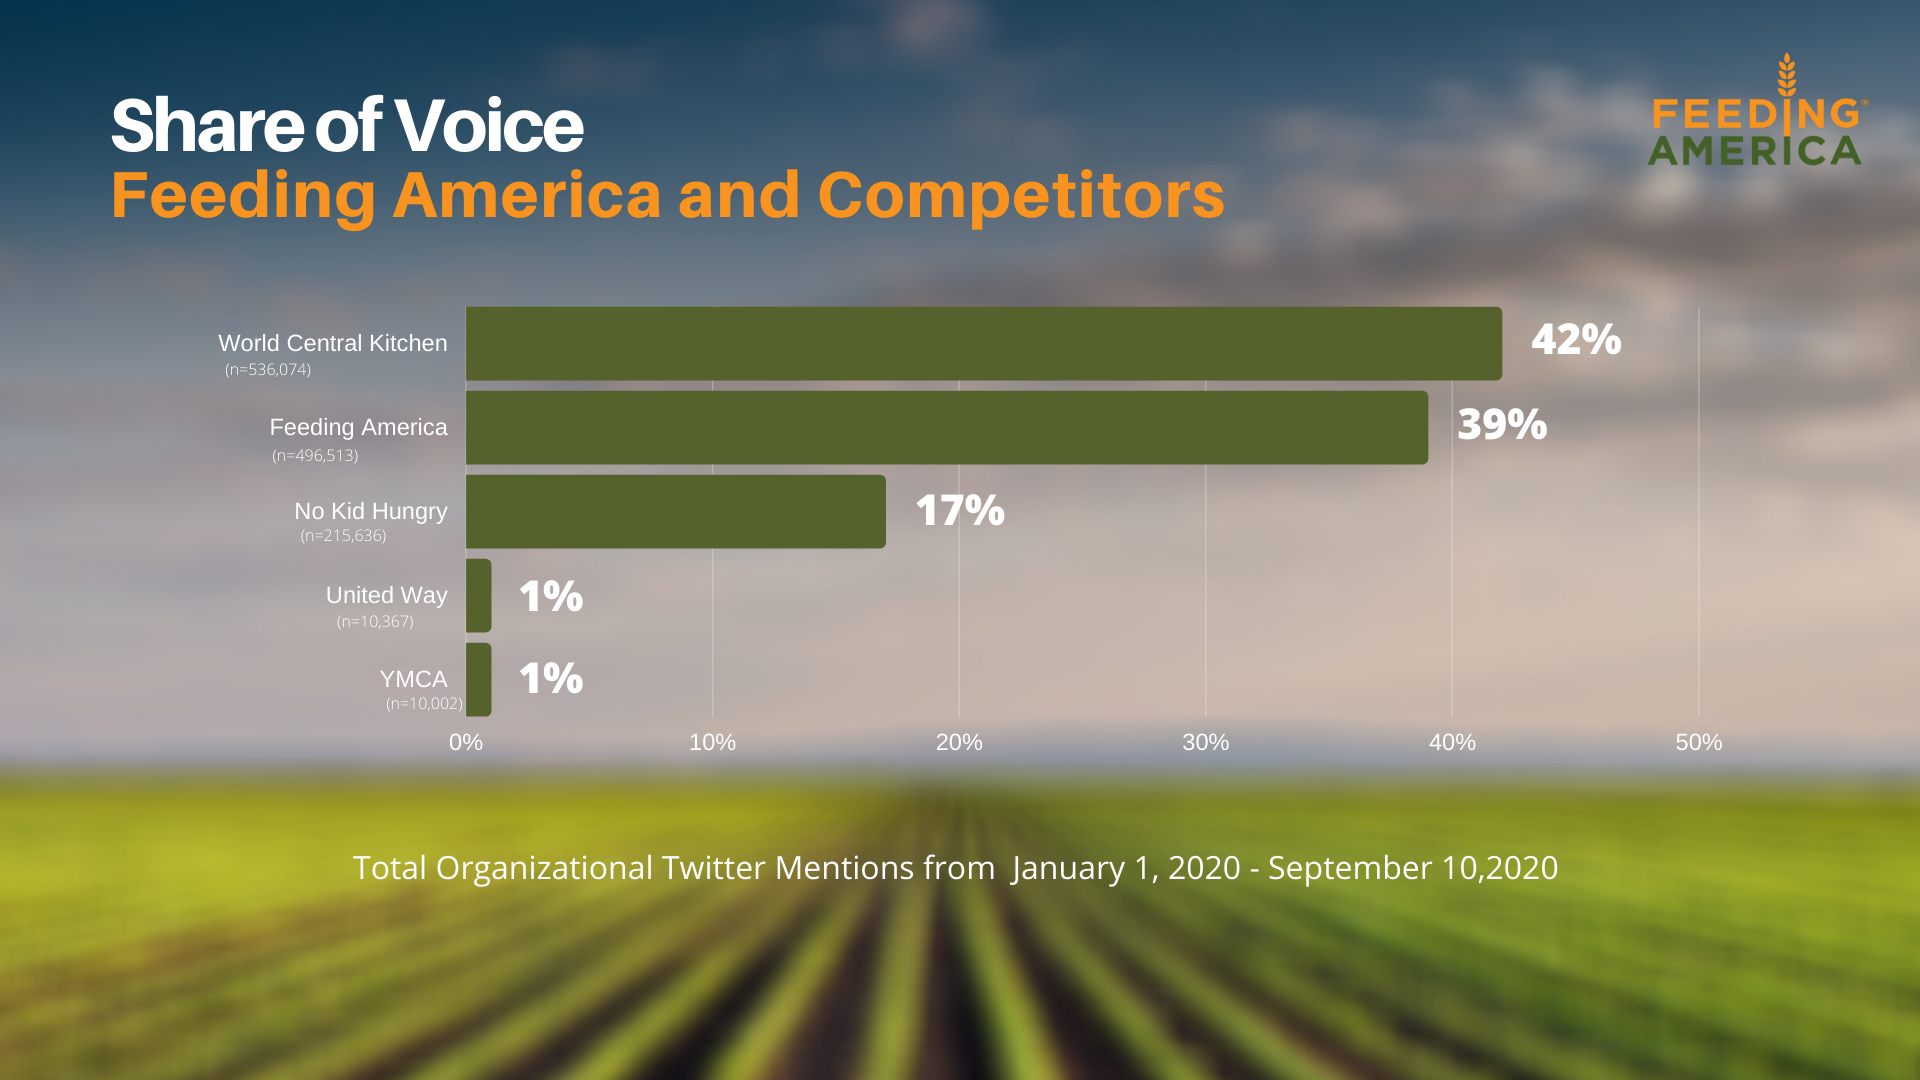 Influencers Plays A Crucial Role In Feeding America's Social Media Activities